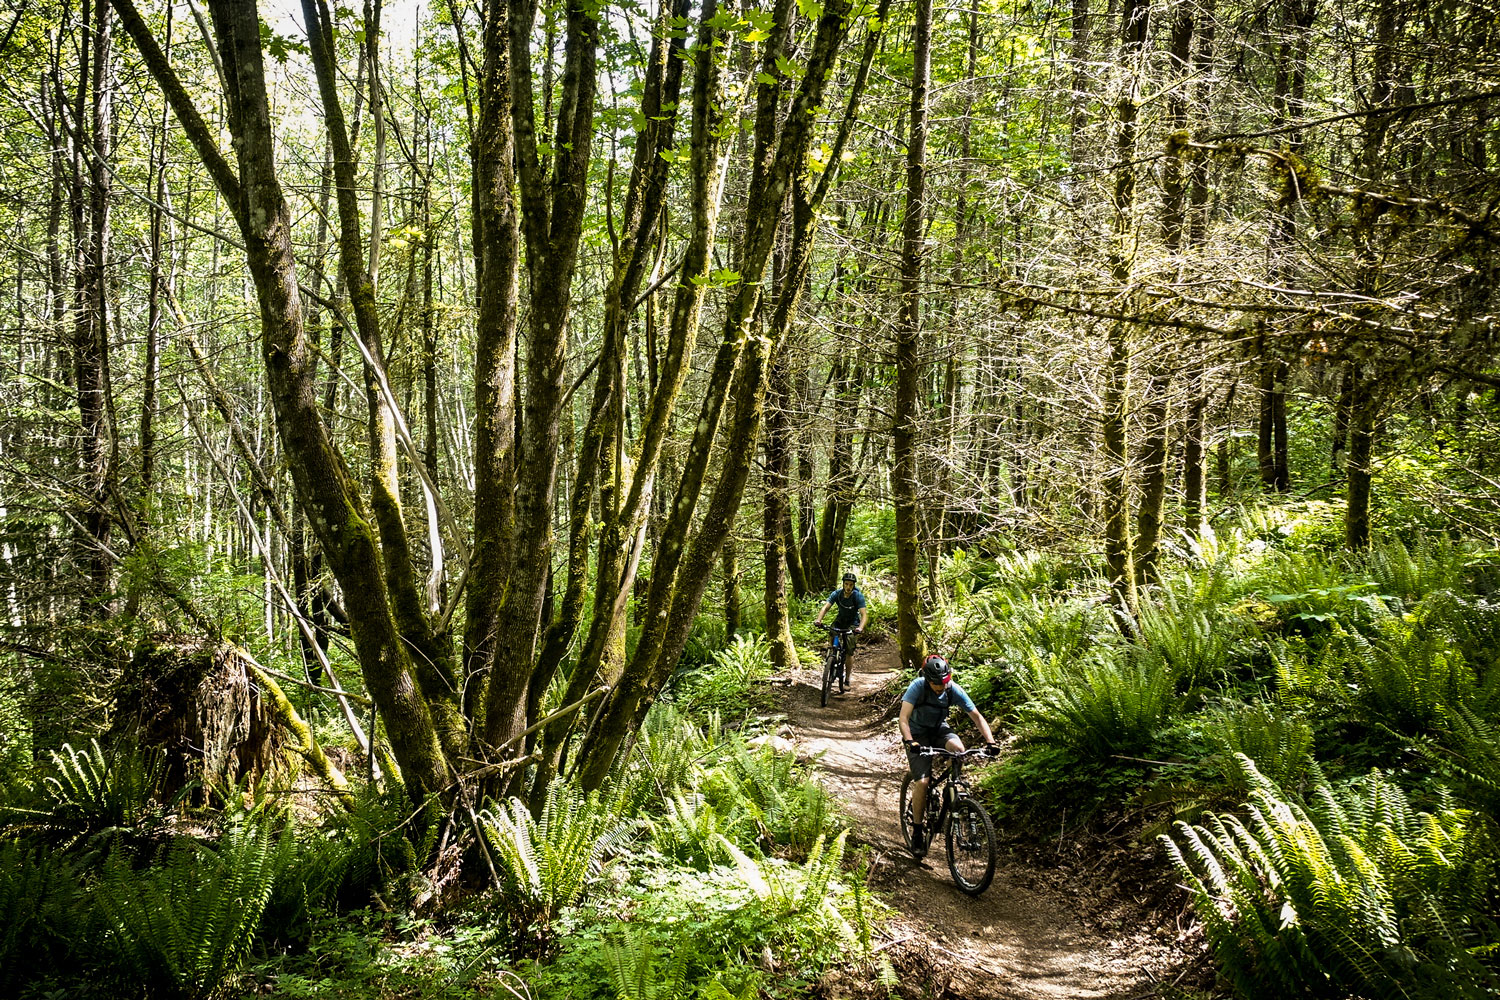 Mountain bikers on Washington's Raging River Trail